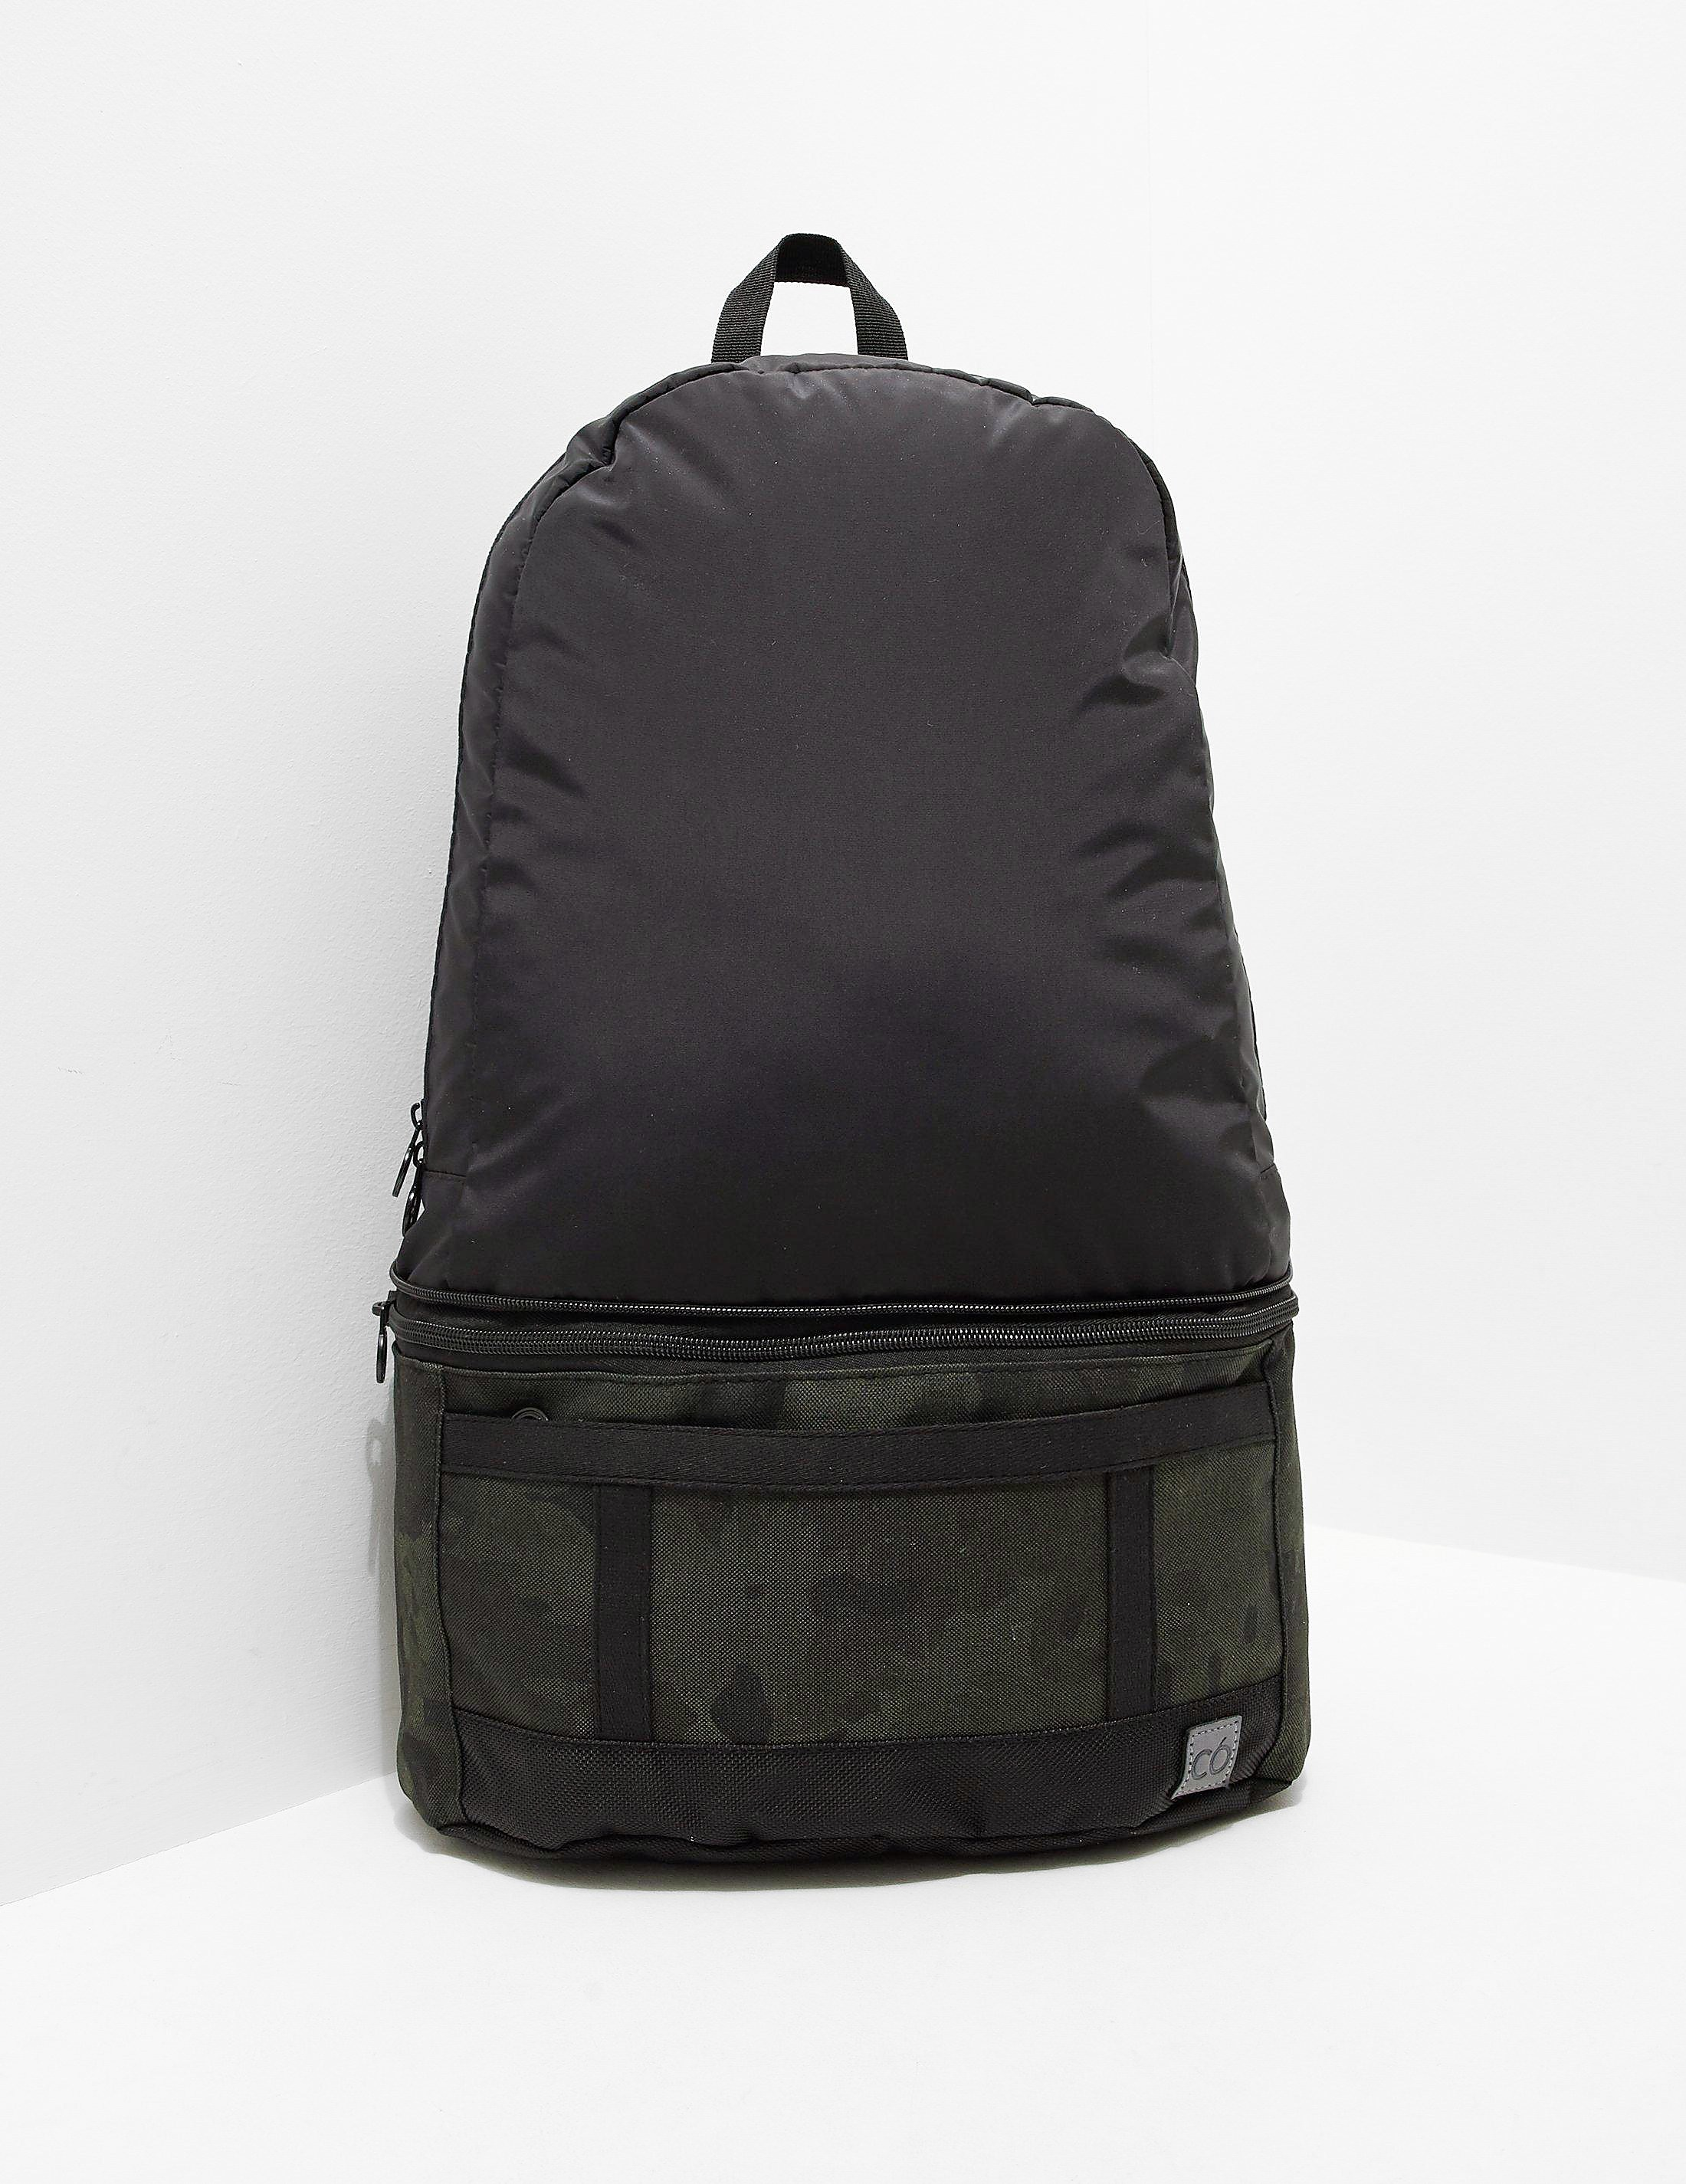 C6 Pion Backpack